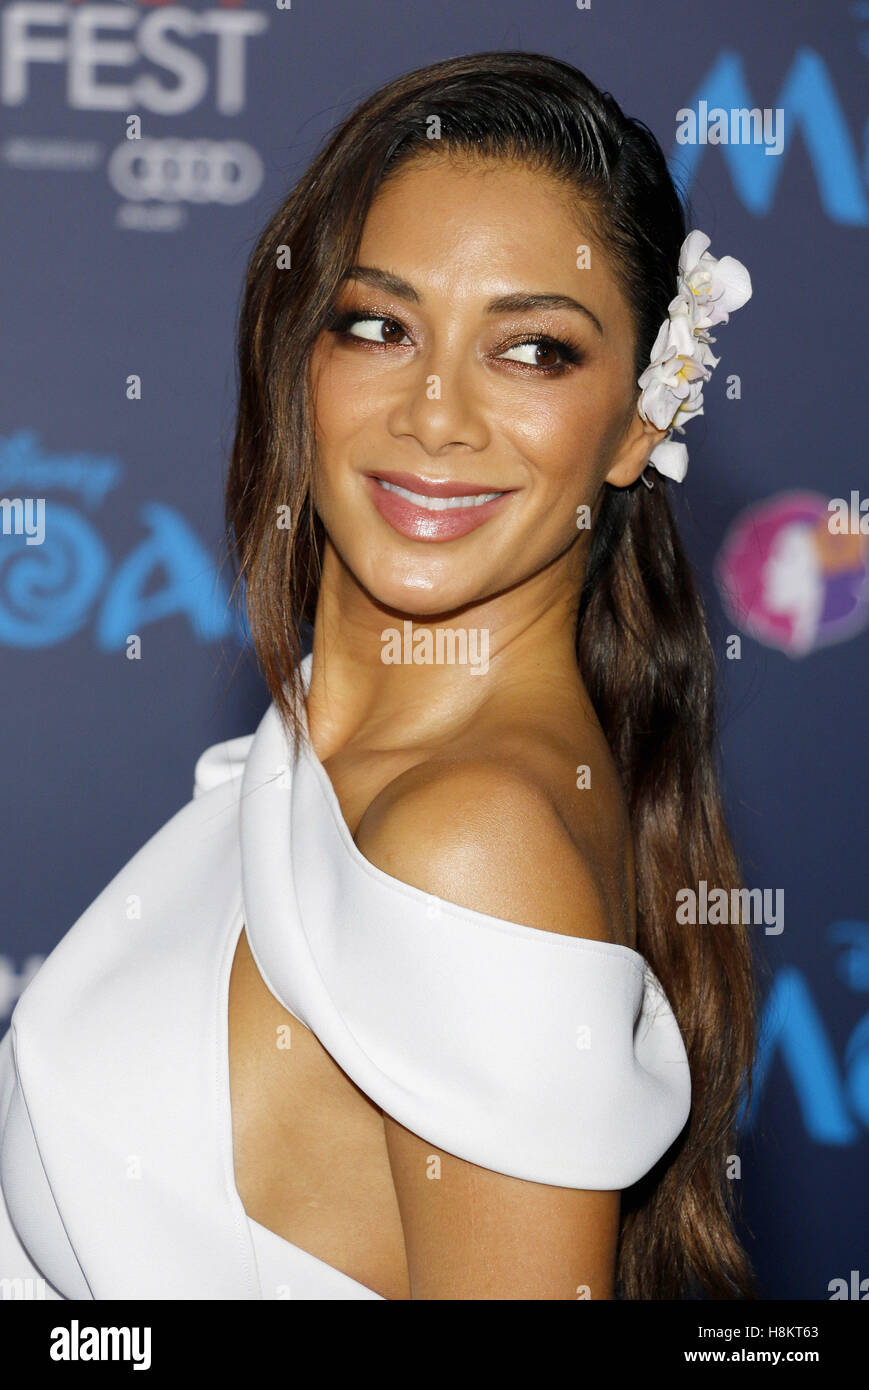 Hollywood, Californie, USA. 14 novembre, 2016. Hollywood, Etats-Unis. 14Th Nov, 2016. Nicole Scherzinger à Photo Stock